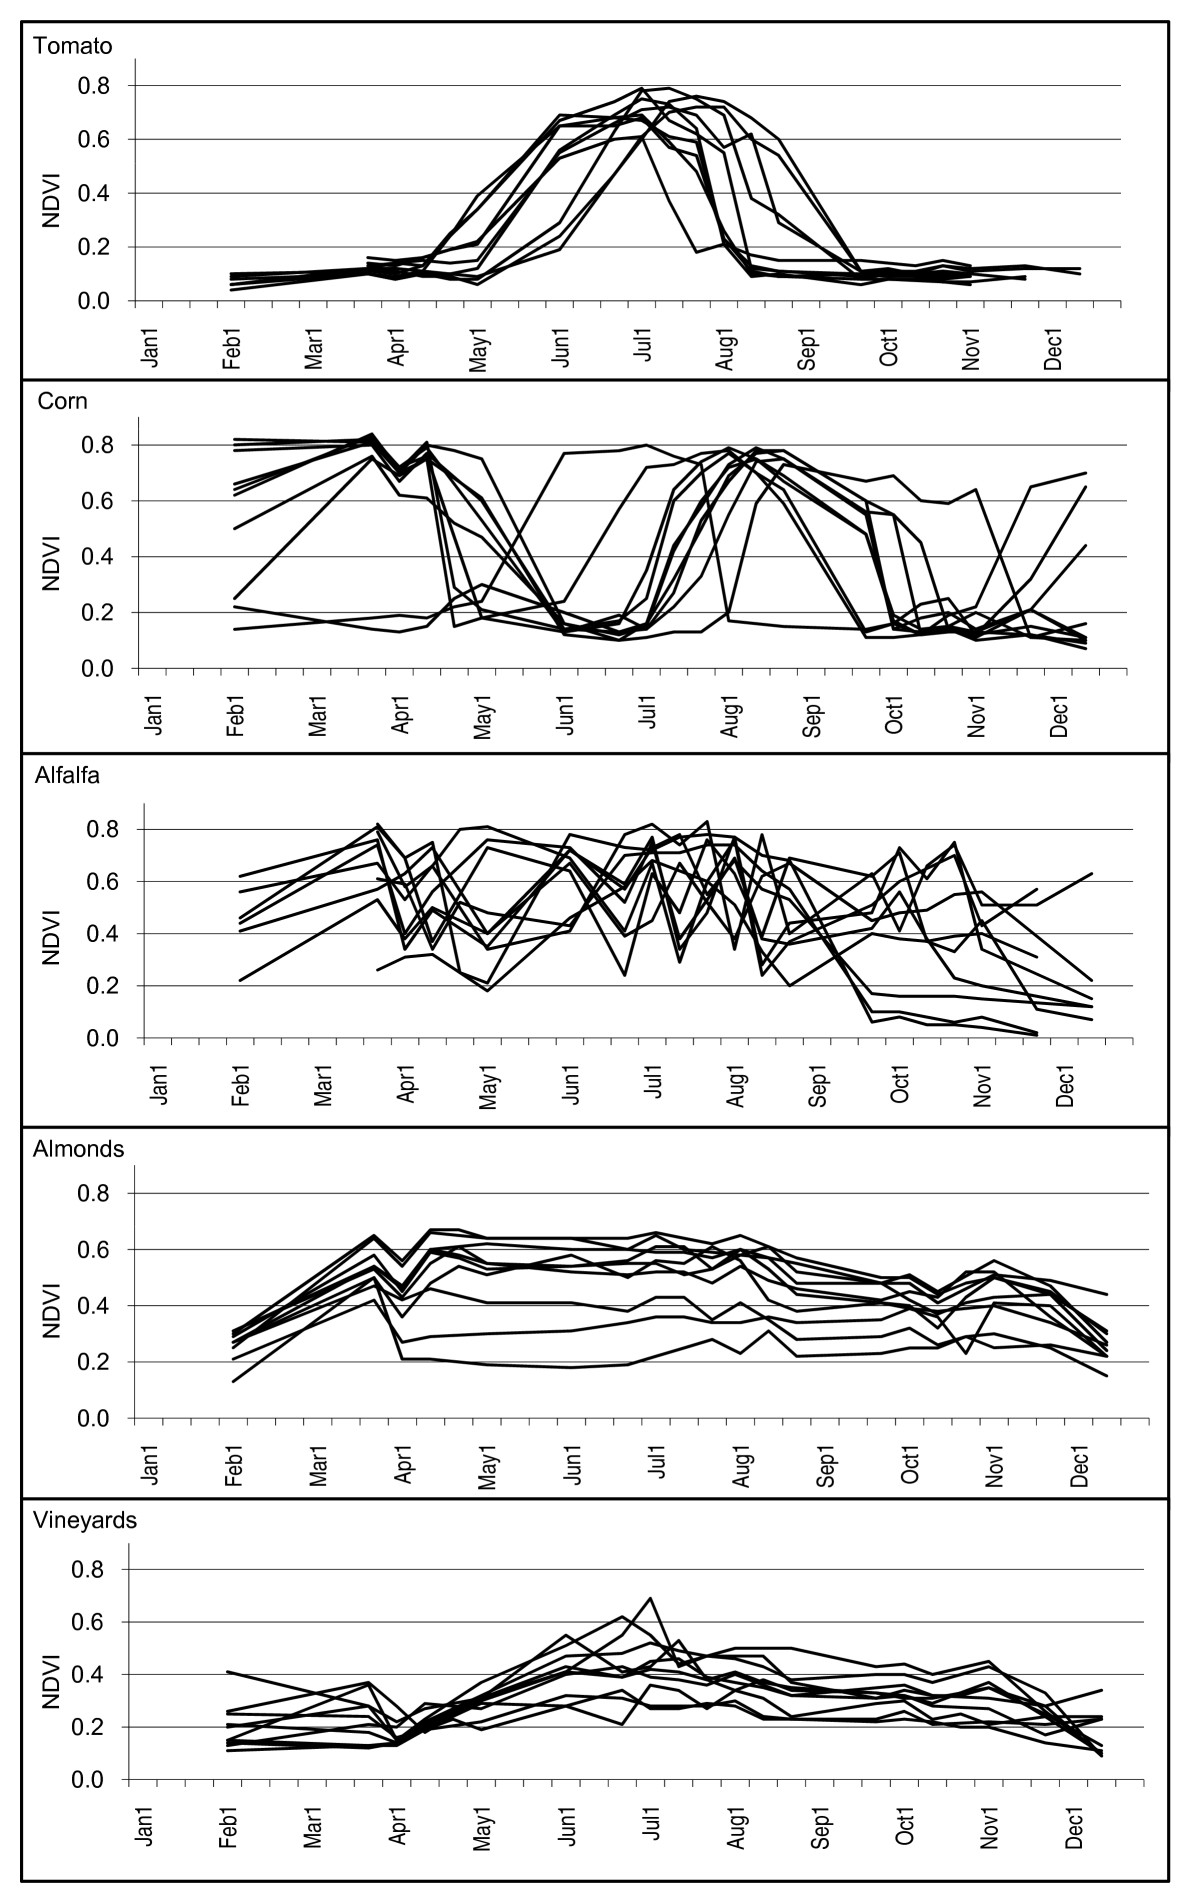 http://static-content.springer.com/image/art%3A10.1186%2F1476-072X-9-46/MediaObjects/12942_2010_Article_379_Fig6_HTML.jpg